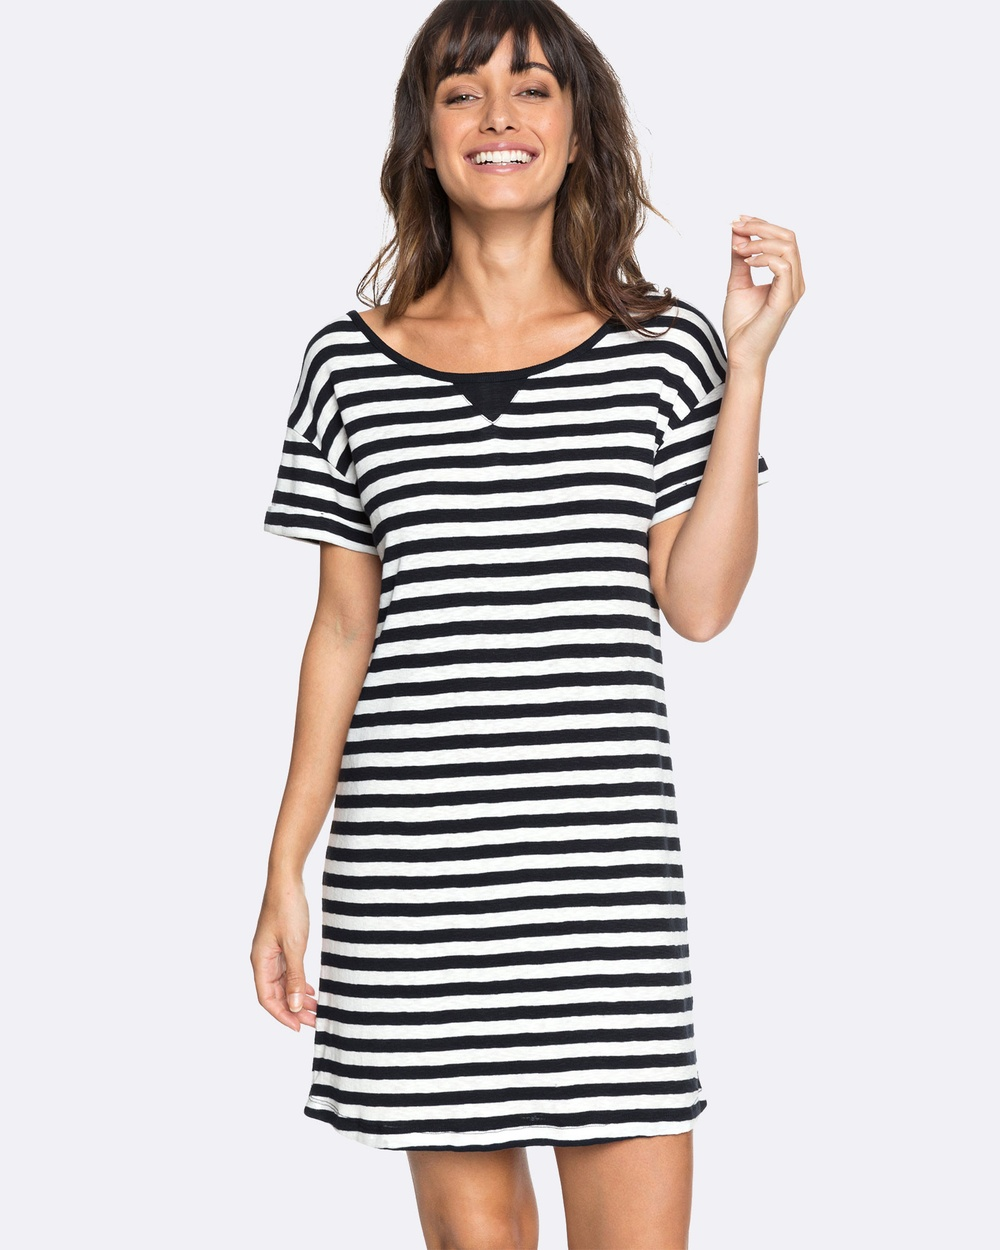 Roxy Womens I Need Your Time Striped Tee Dress Swimwear TRUE BLACK BIG SIMPL Womens I Need Your Time Striped Tee Dress